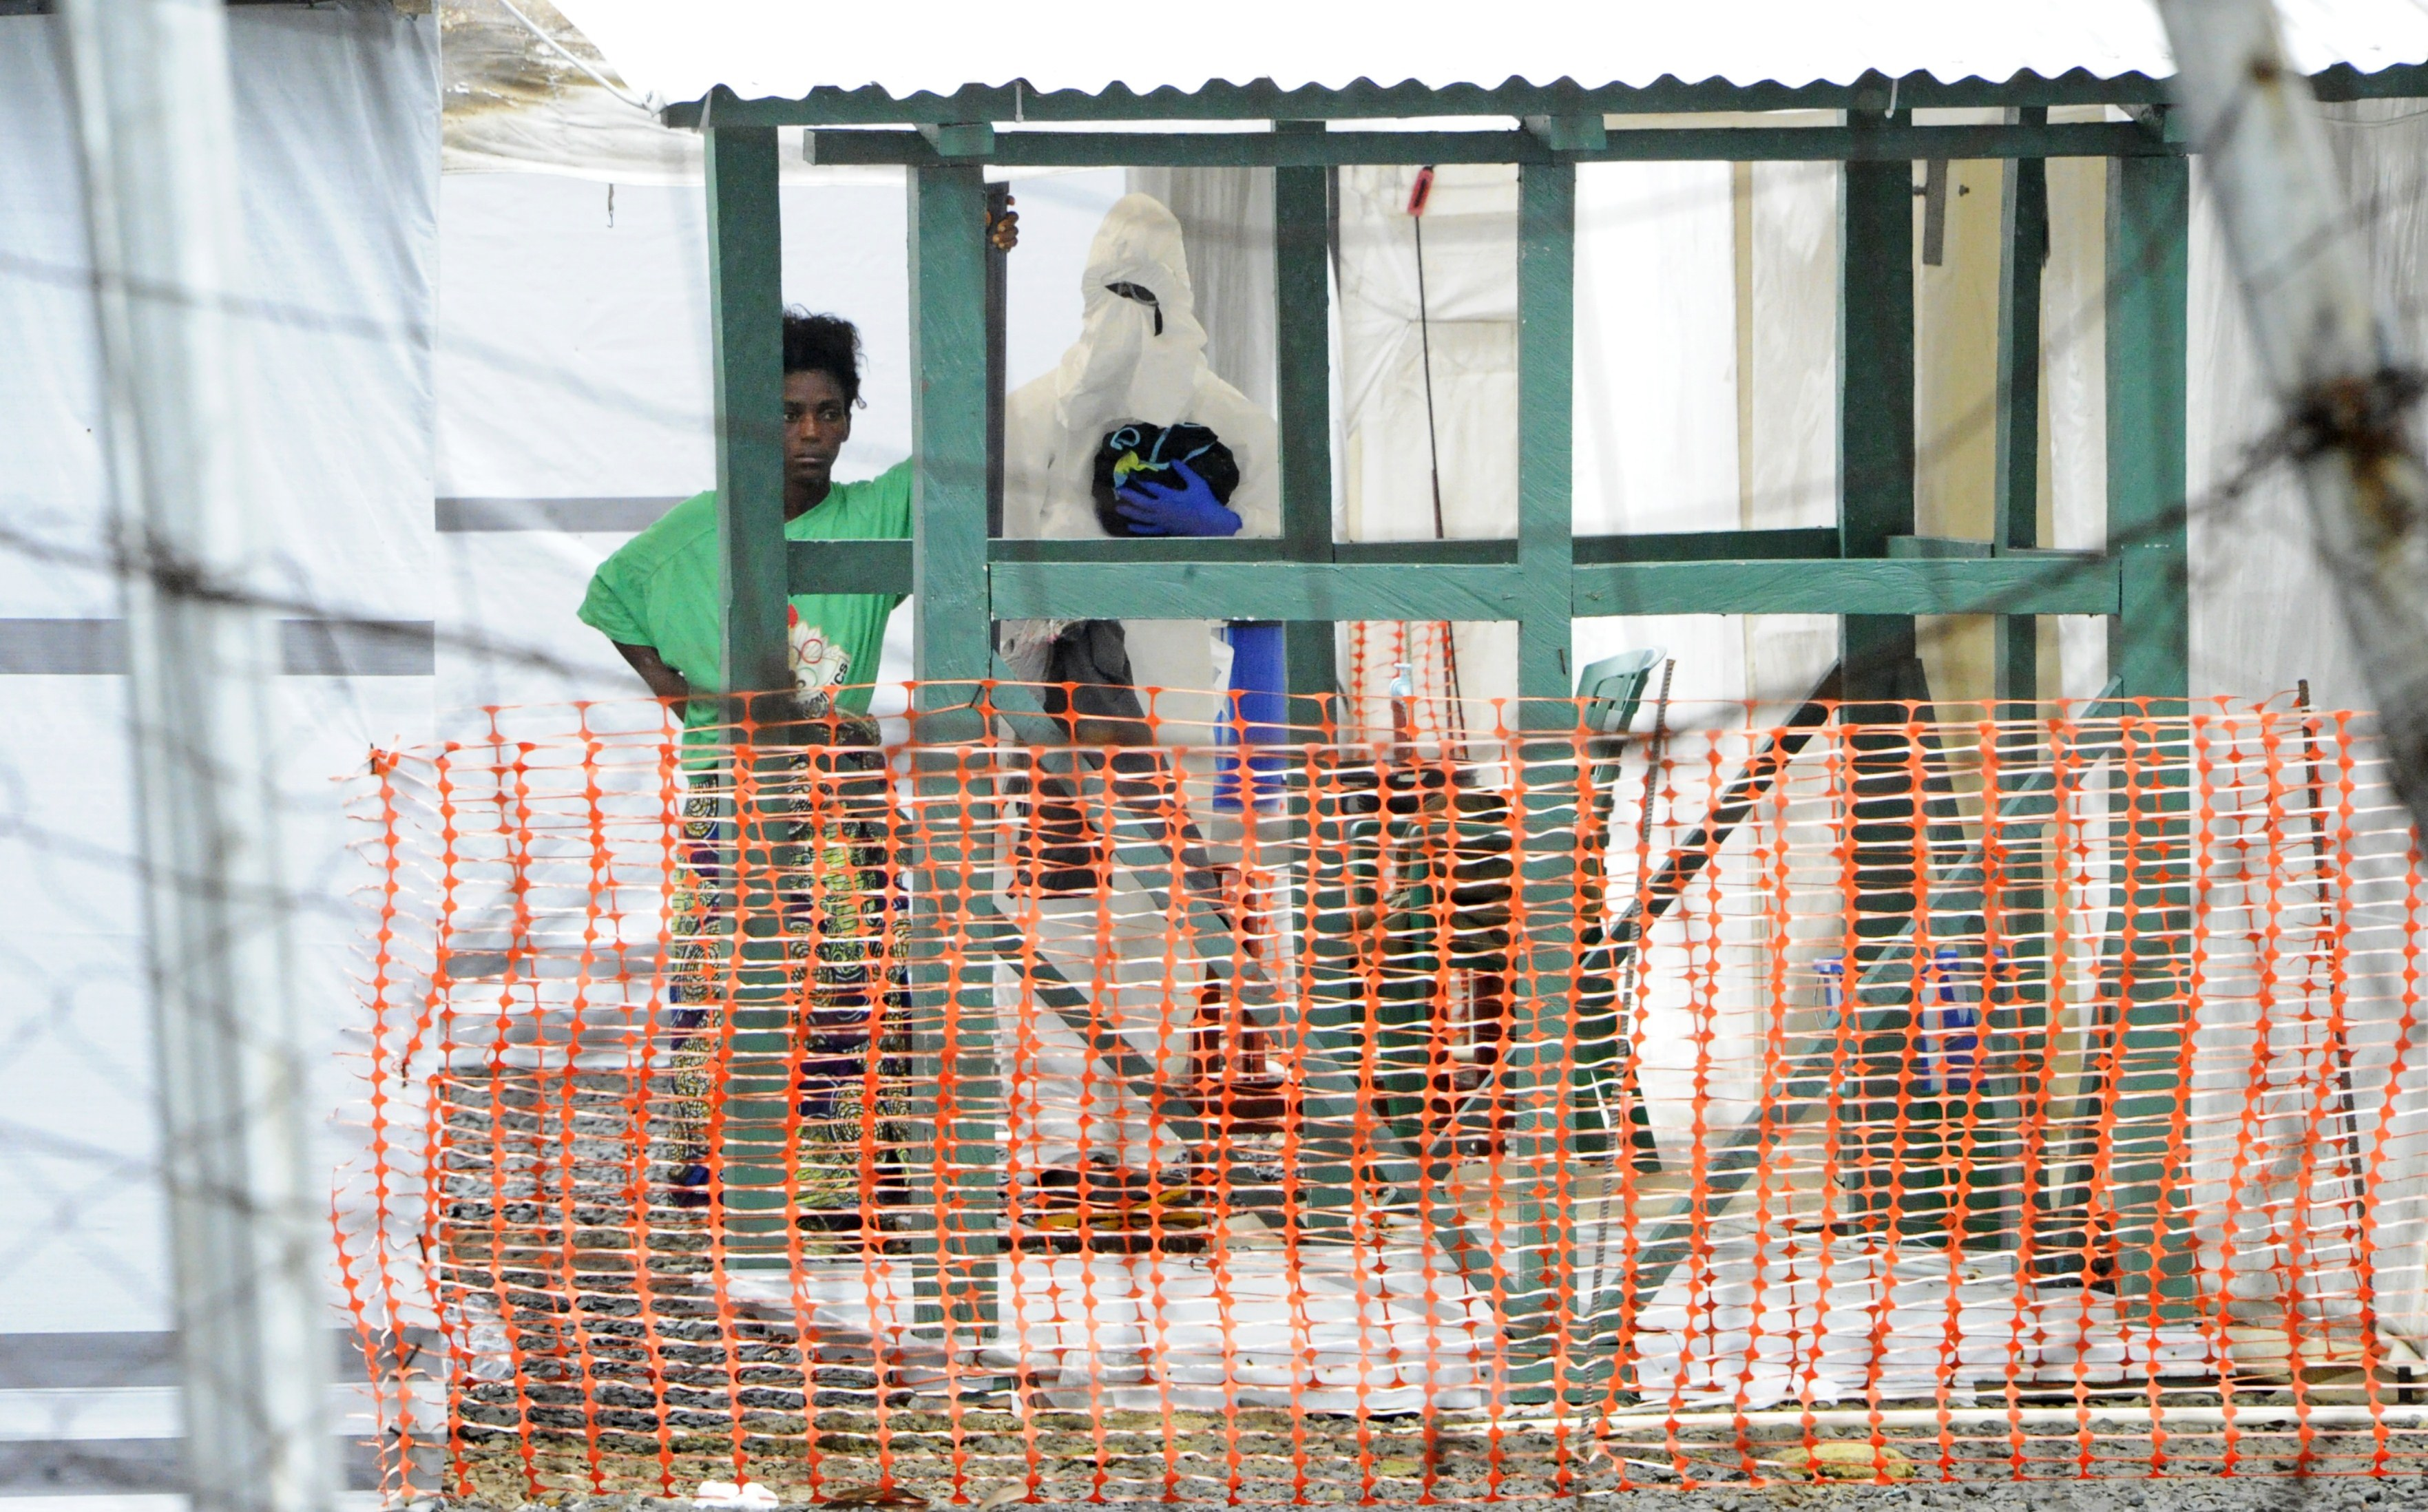 A woman, suspected of carrying ebola, looks on while under quarantine in the red zone of the Elwa clinic, an ebola treatment center in Monrovia on July 20, 2015. AFP PHOTO / ZOOM DOSSO        (Photo credit should read ZOOM DOSSO/AFP/Getty Images)